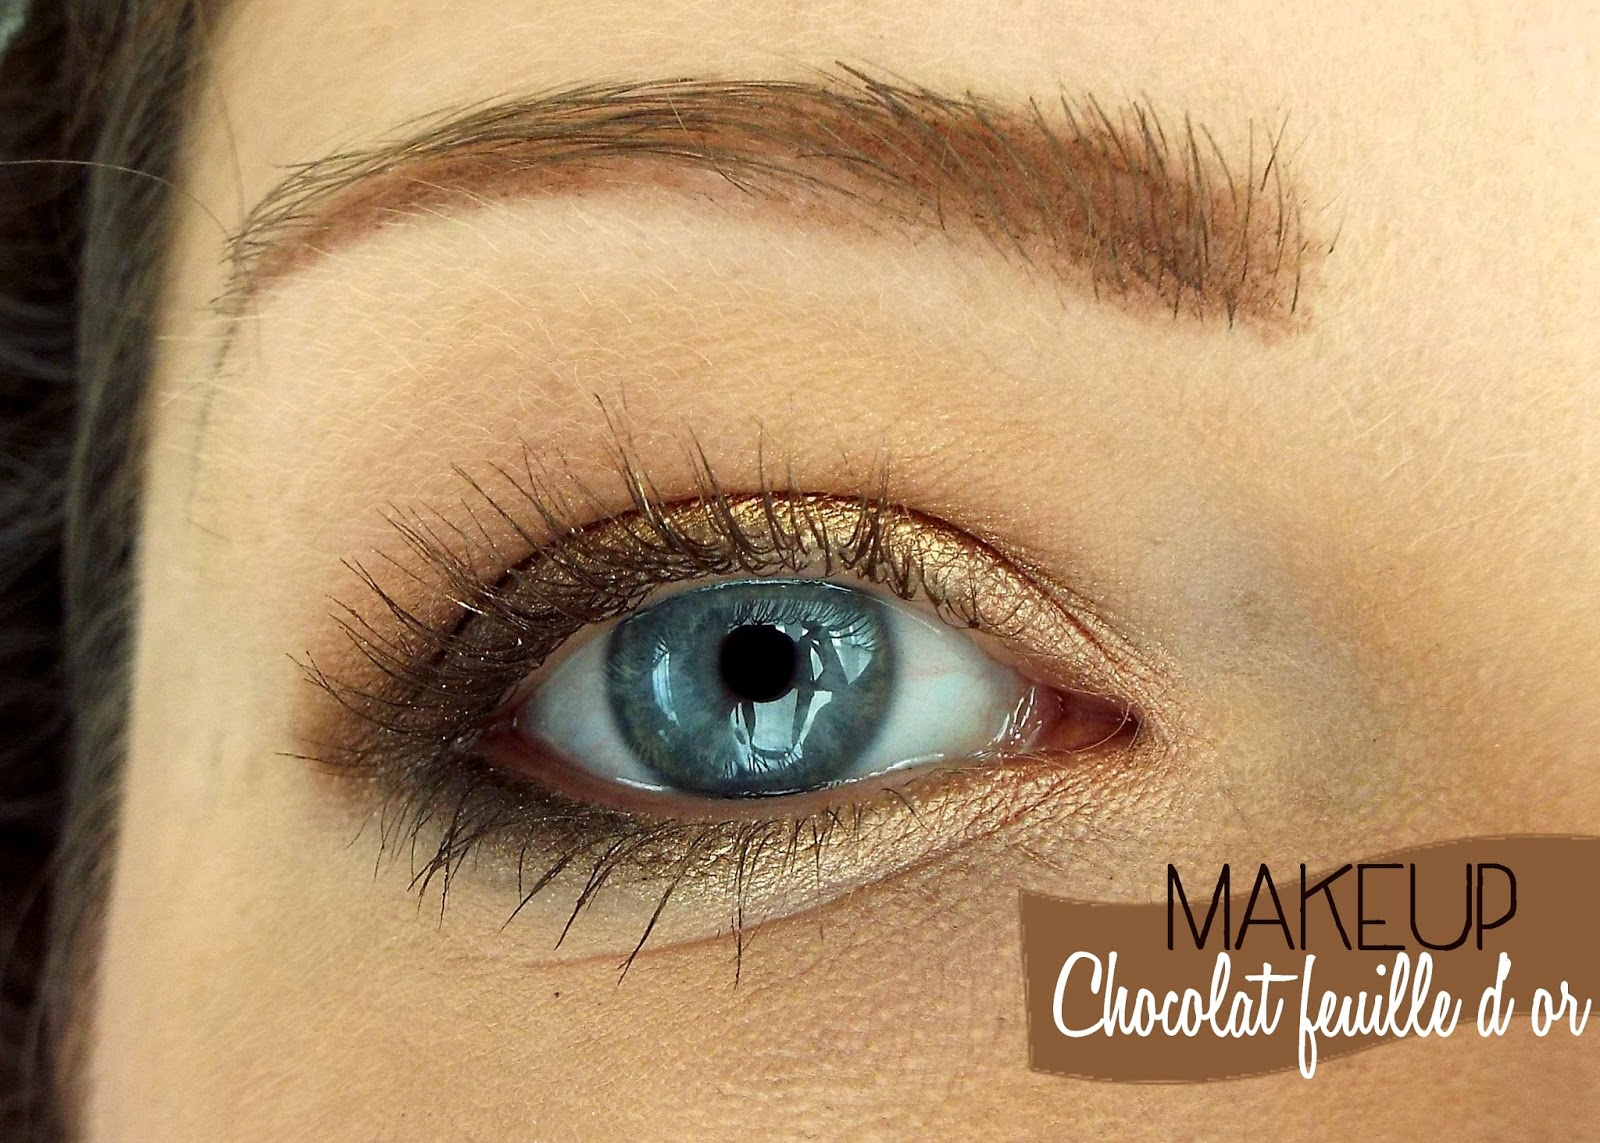 Makeup Chocolat feuille d'or avec Too Faced